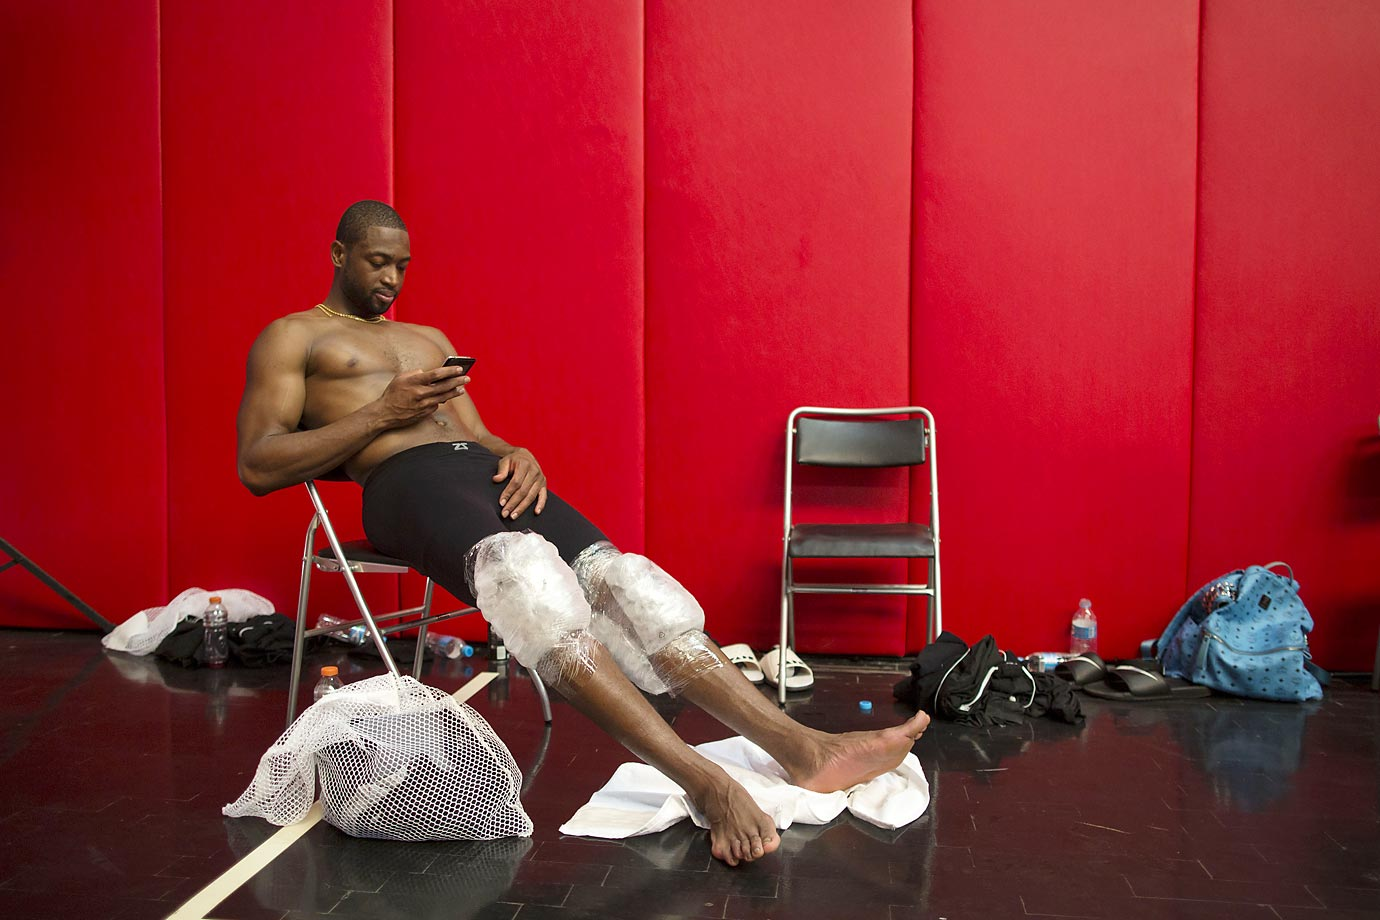 Miami Heat's Dwyane Wade icing his knees after practice in Rio de Janeiro.  The Heat played the Cavs in a preseason game on Saturday as part of the NBA Global Games.